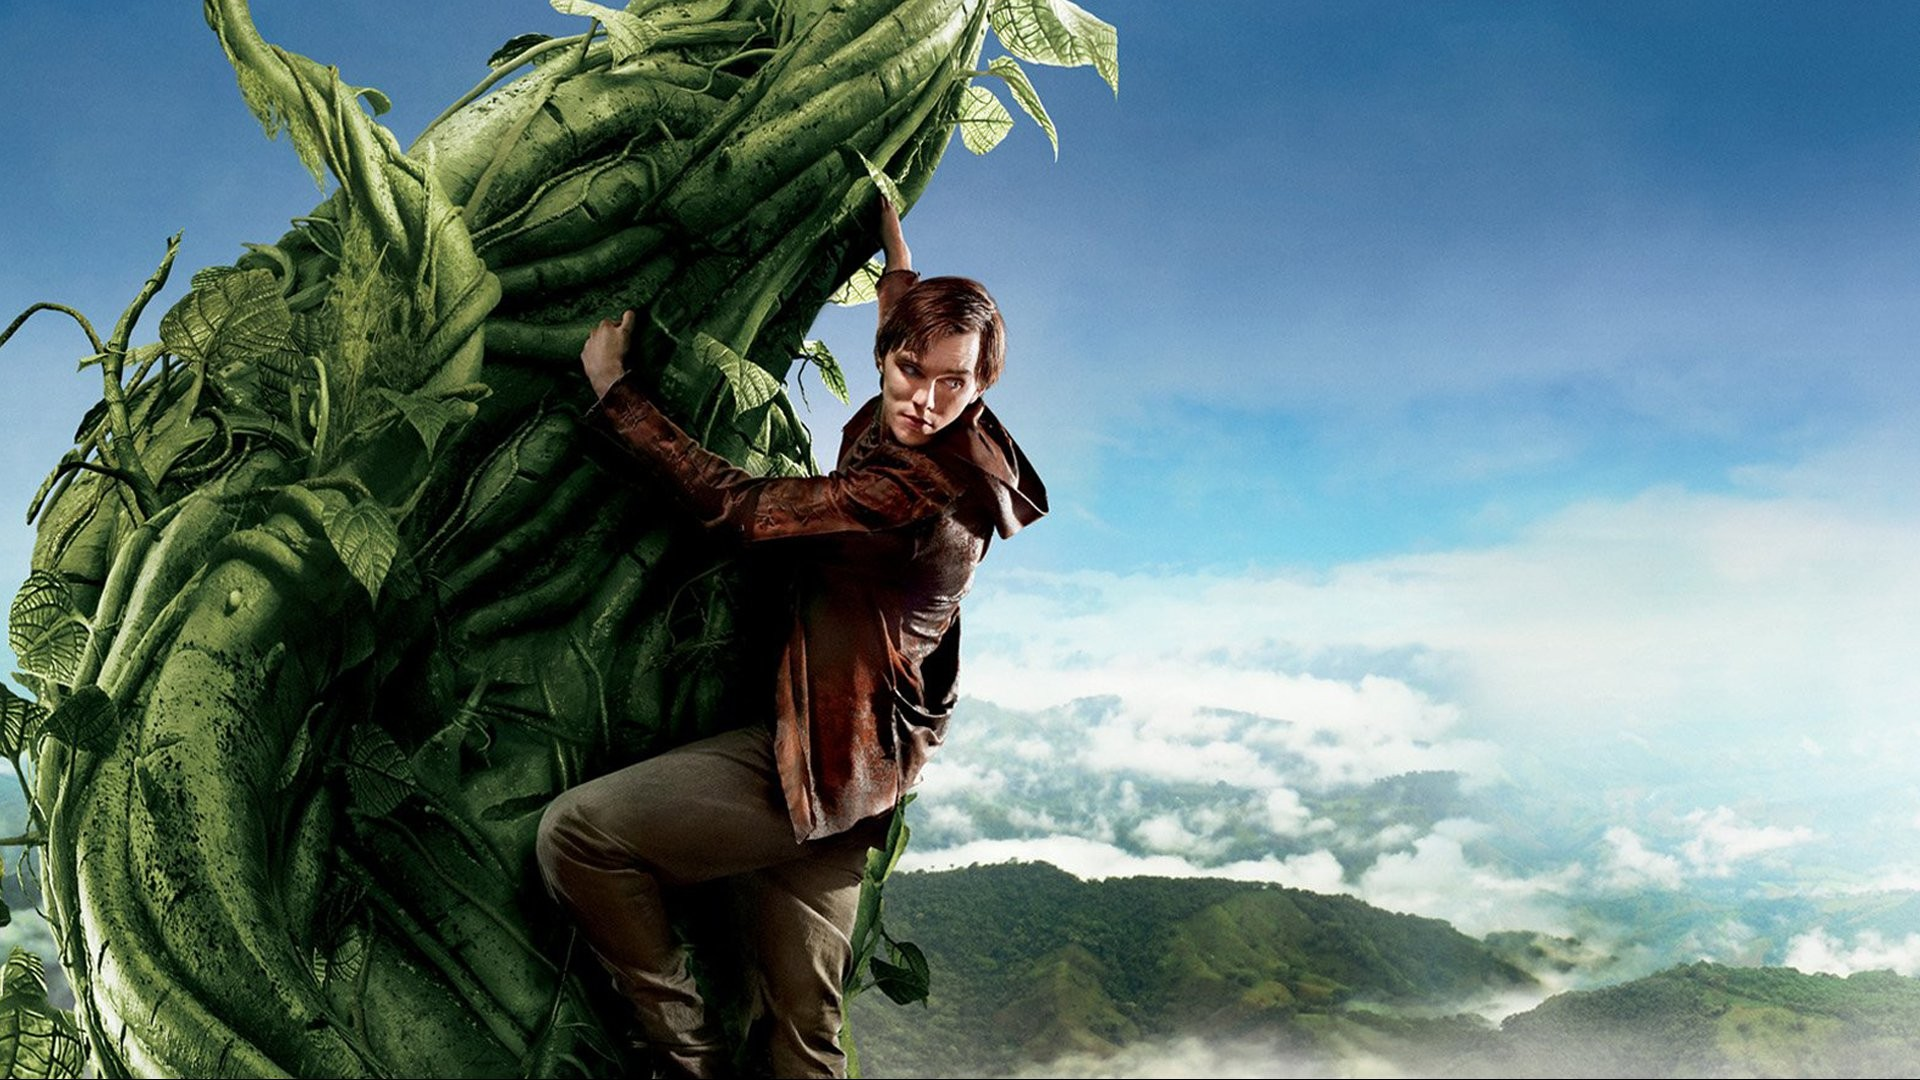 Jack The Giant Slayer 2013 Filmfed Movies Ratings Reviews And Trailers